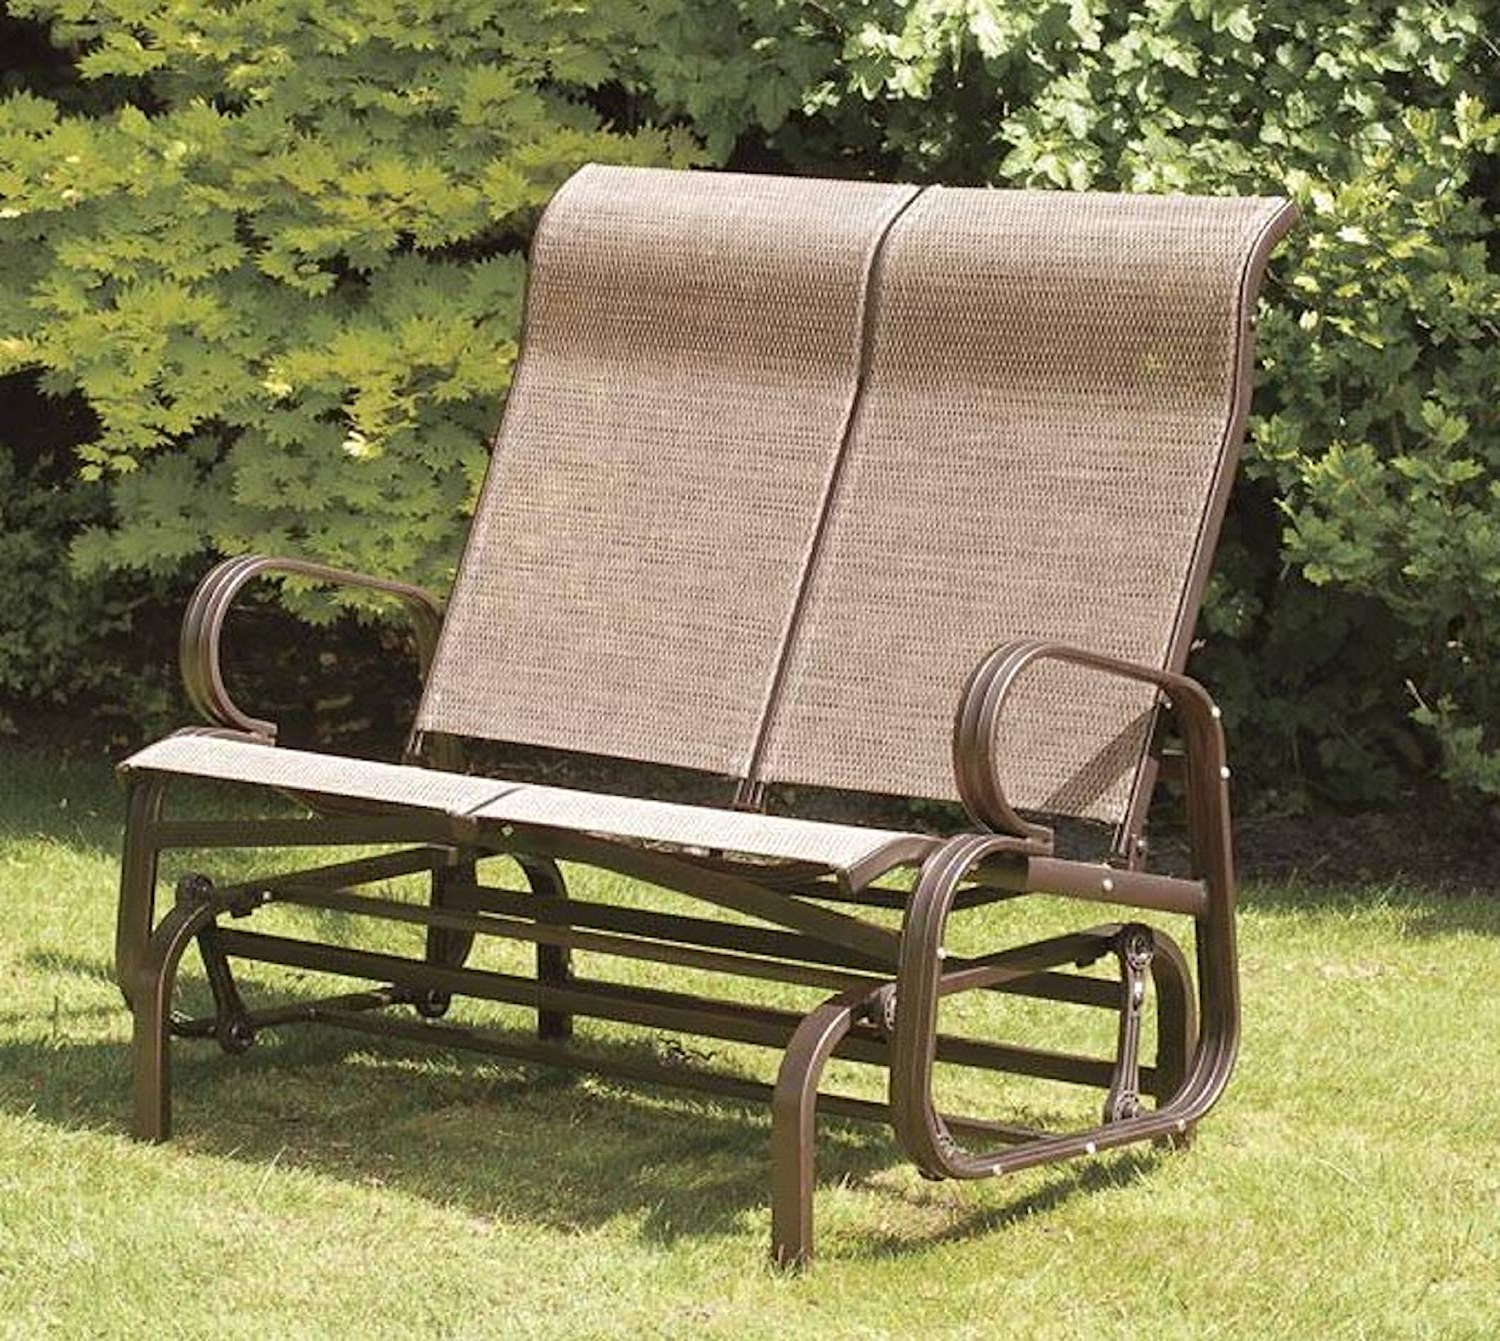 Transcontinental Group Havana Twin Seat Glider With 45 Textilene, Bronze Intended For Most Recent Twin Seat Glider Benches (Gallery 3 of 31)